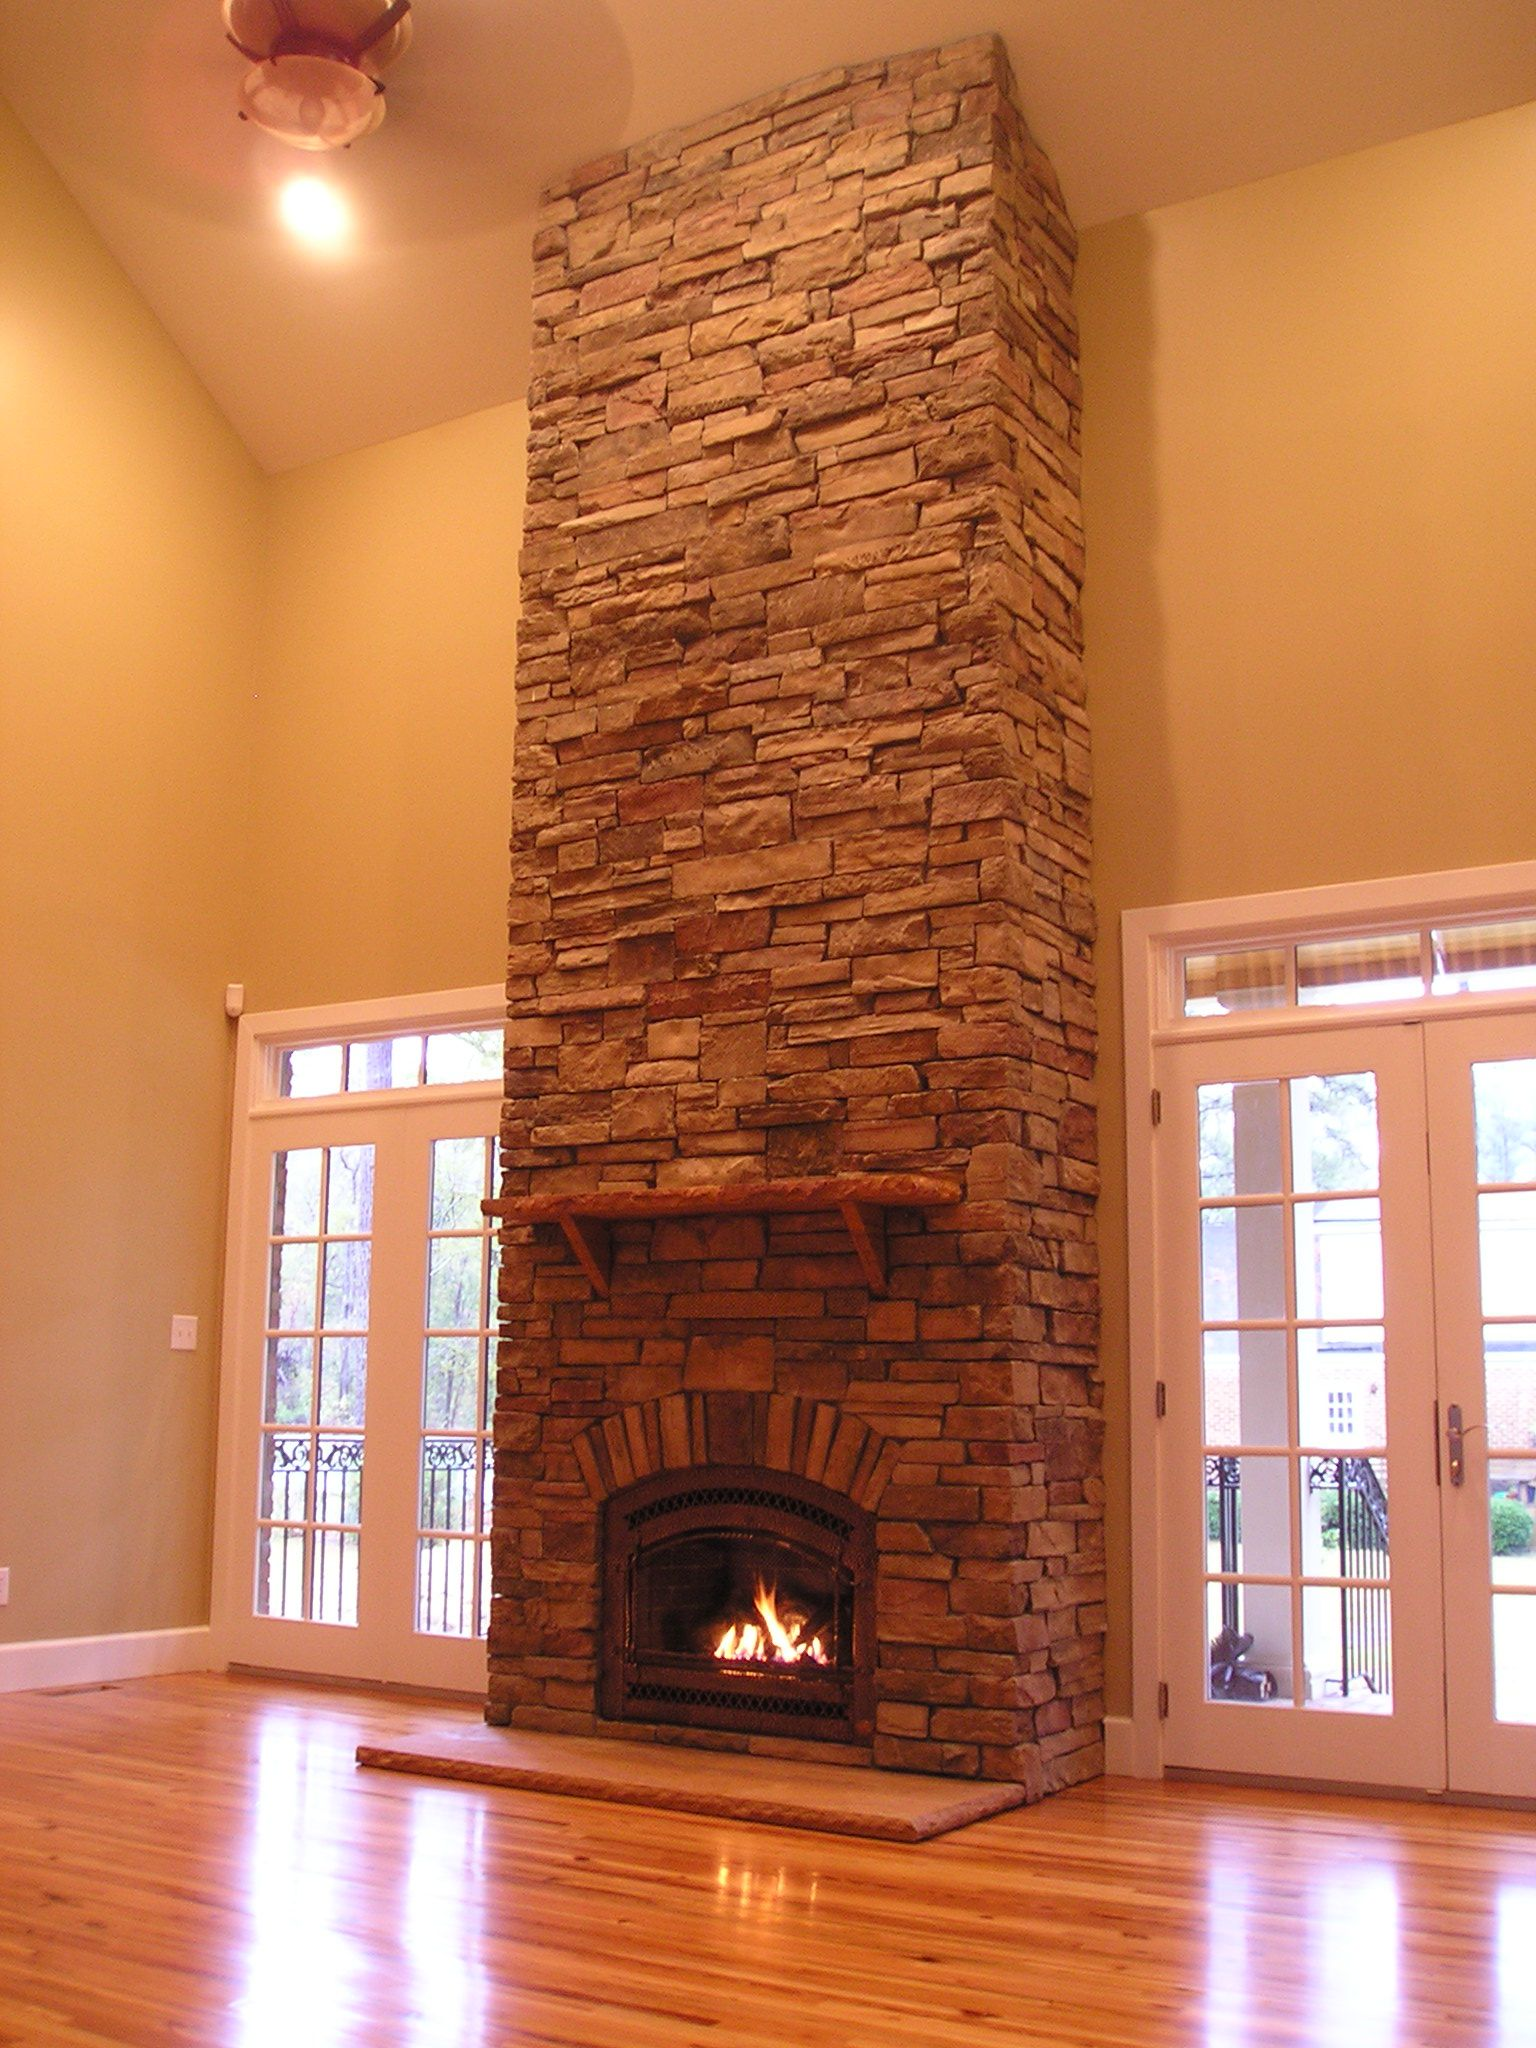 Coastroad Hearth And Patio Supply Coastroad Patio Hearth And Patio Fireplace Remodel Fireplace Design